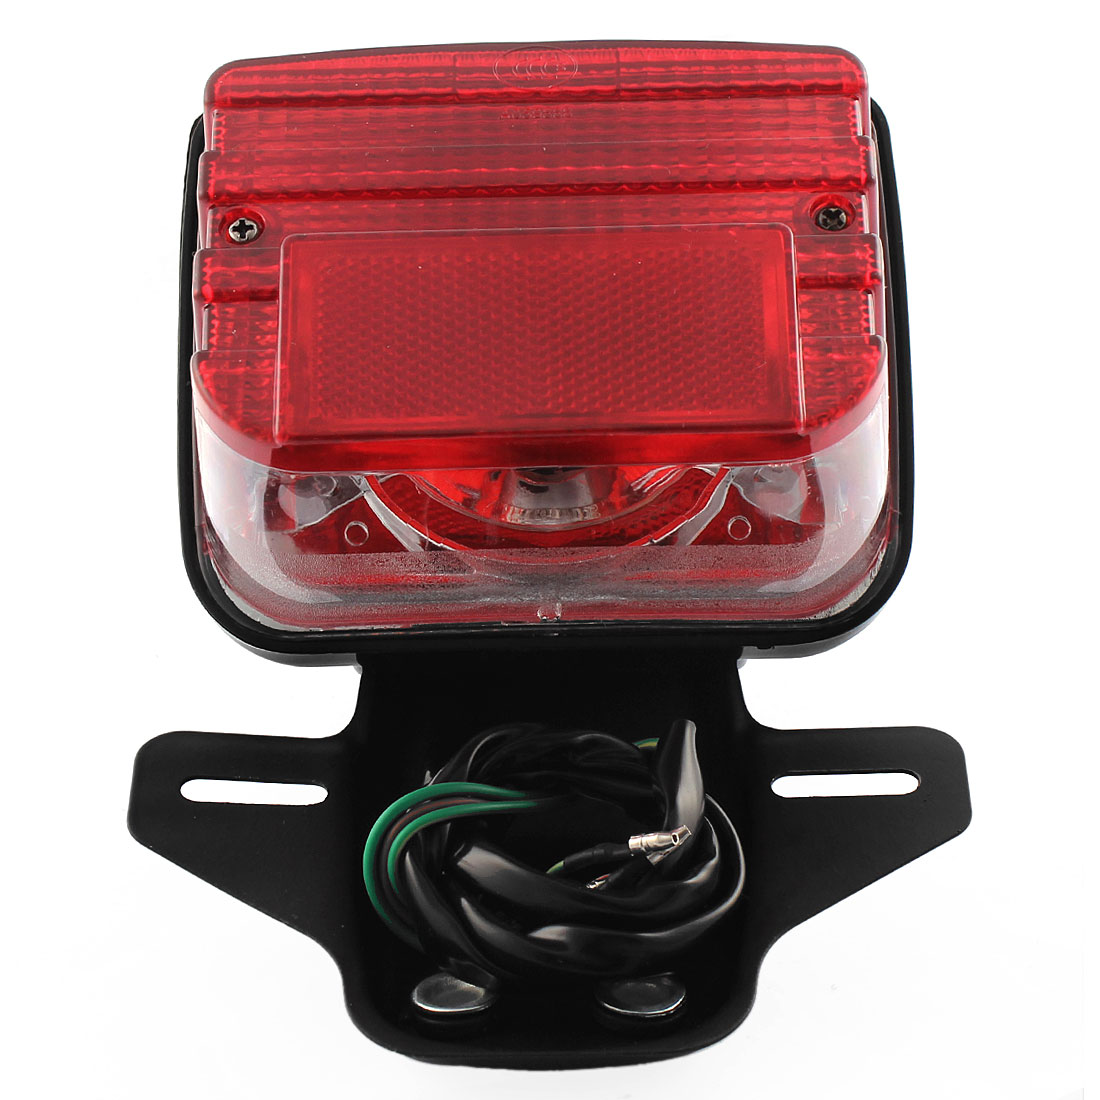 Motorcycle DirtBike Snowmobile Tail Light Red Bulb Brake Running Lights for CG-125